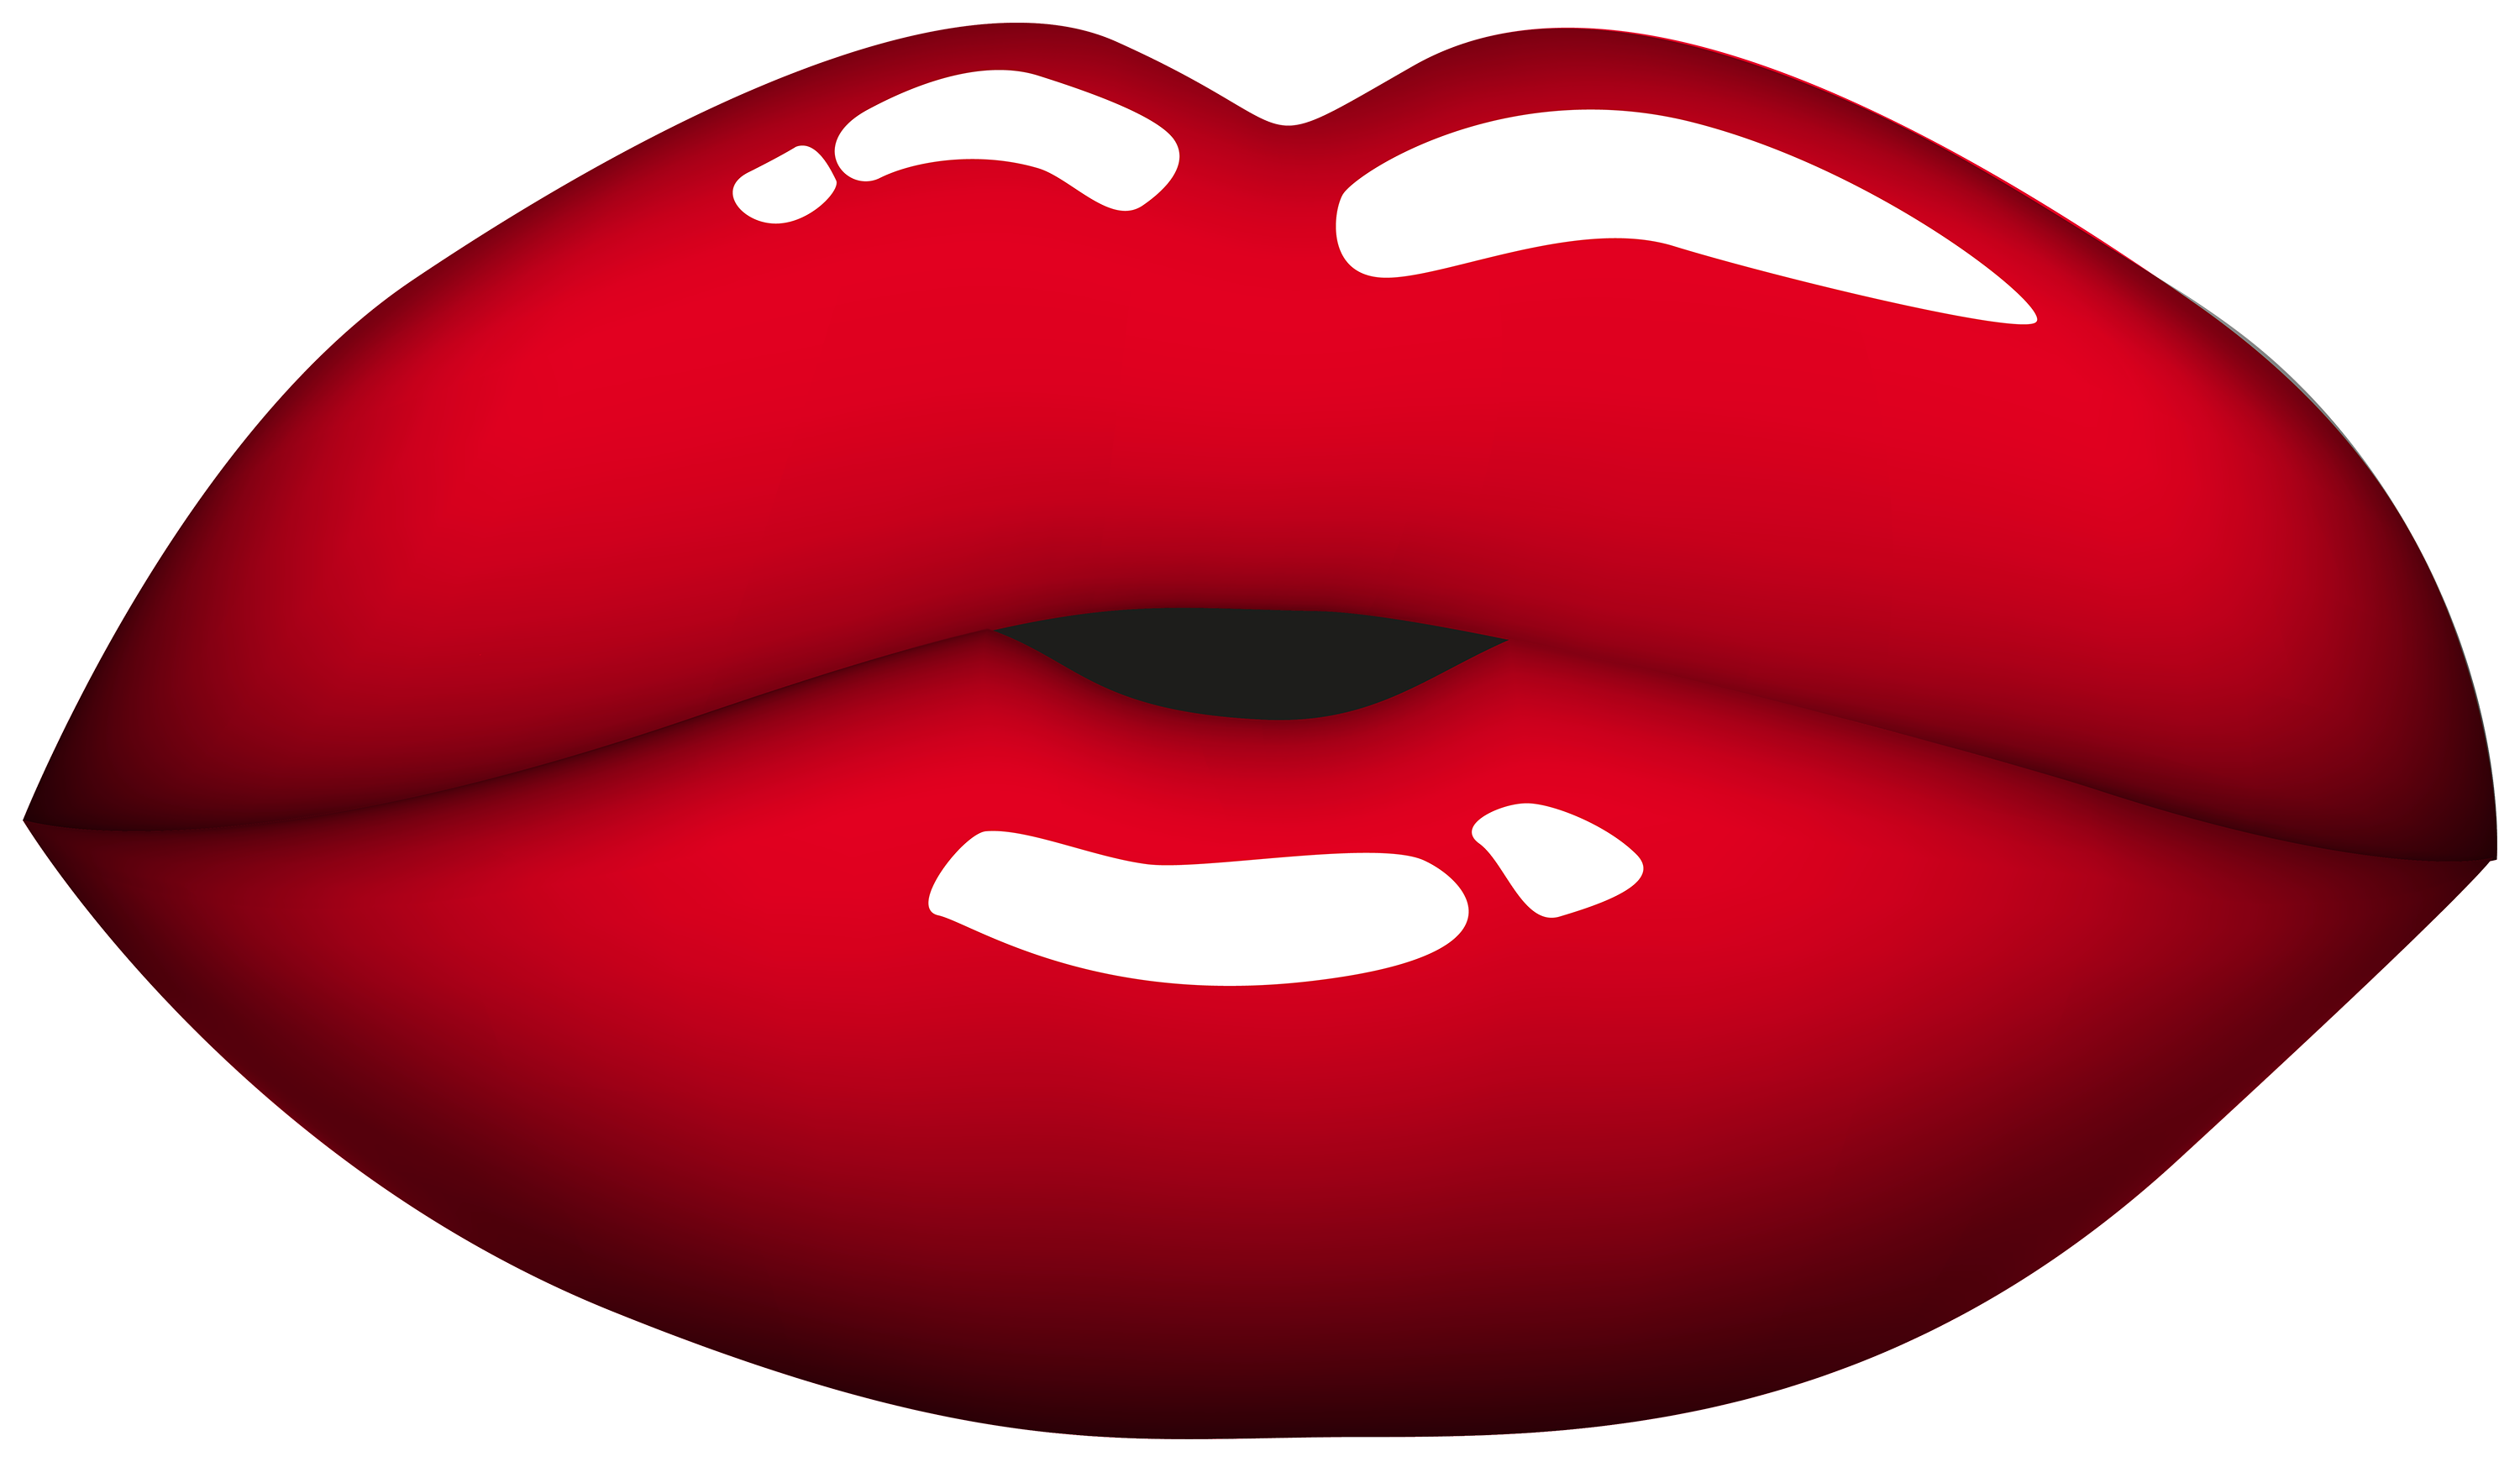 Fish lips clipart picture royalty free 28+ Collection of Big Lips Clipart | High quality, free cliparts ... picture royalty free